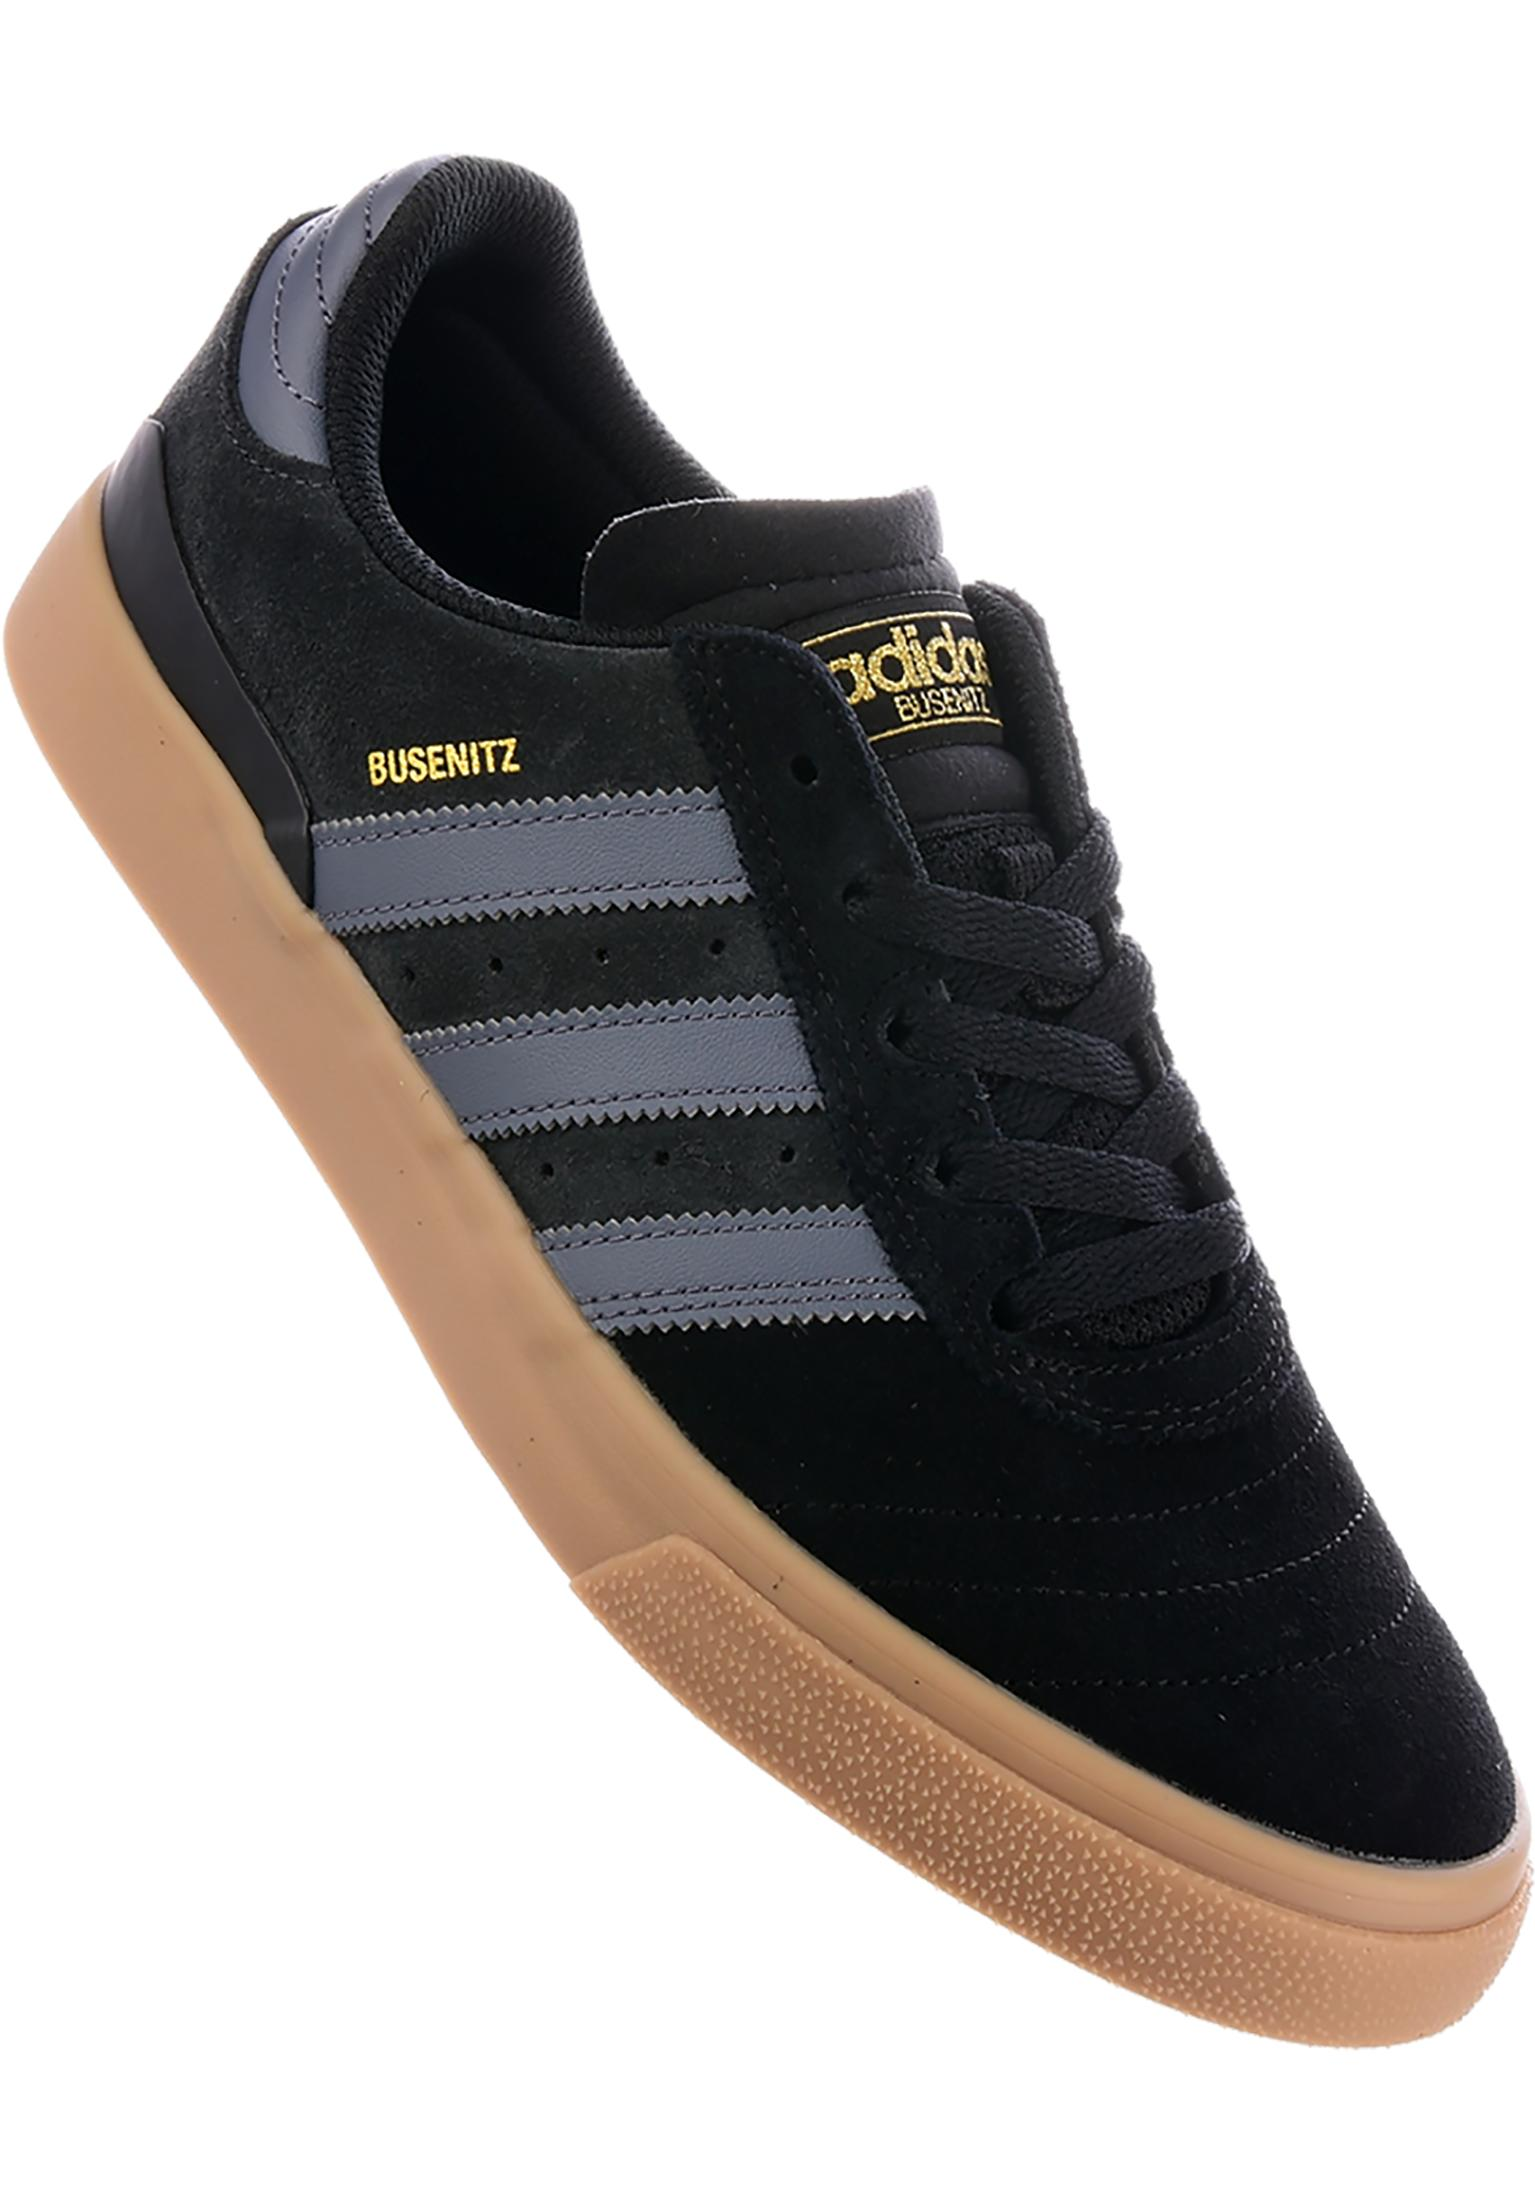 Busenitz Vulc ADV adidas-skateboarding All Shoes in coreblack-onix-gum for  Men  8ba1e4187